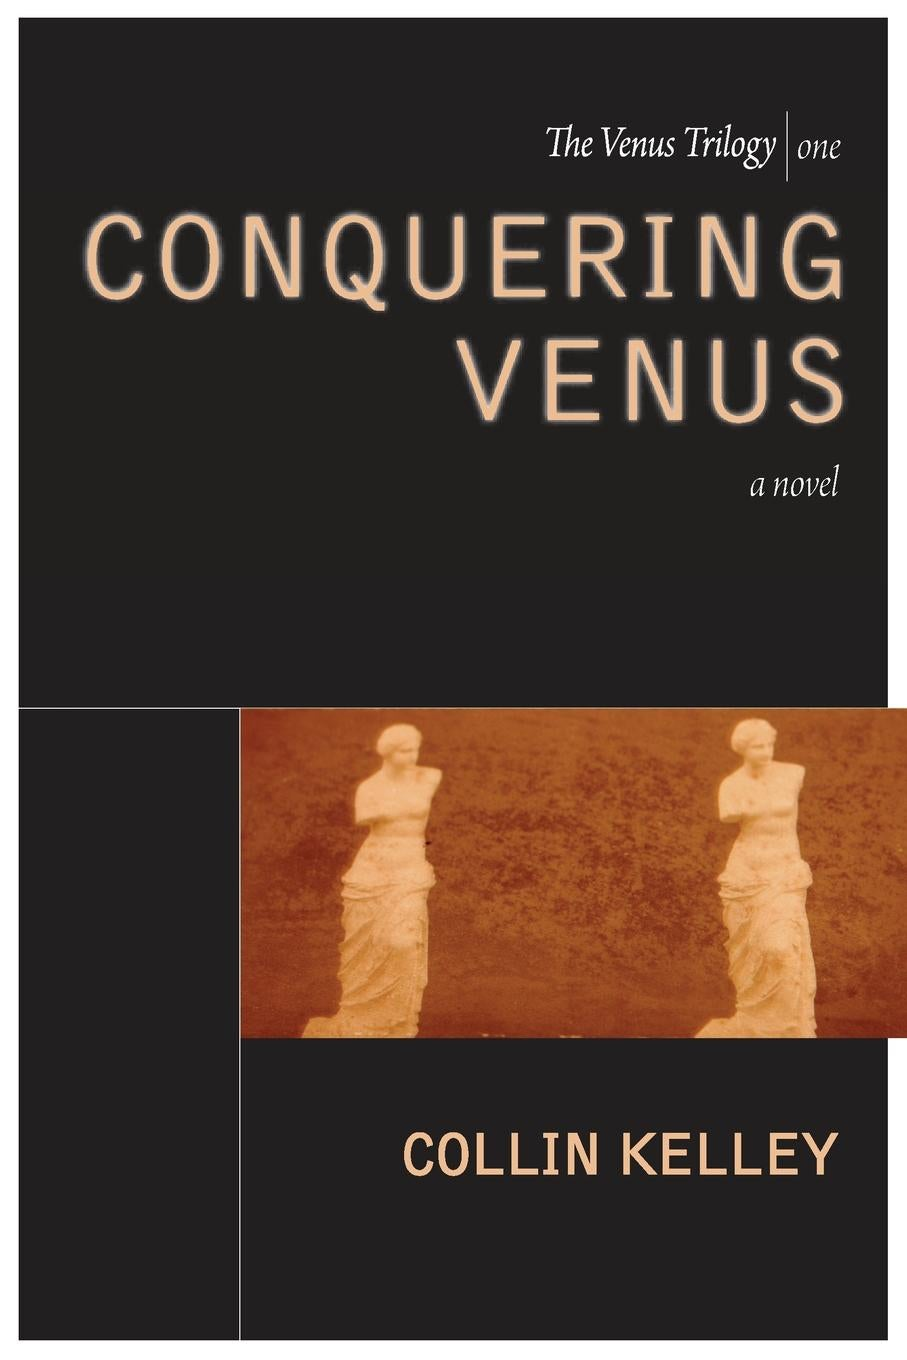 Image of Conquering Venus: The Venus Trilogy Book One by Collin Kelley (Paperback)